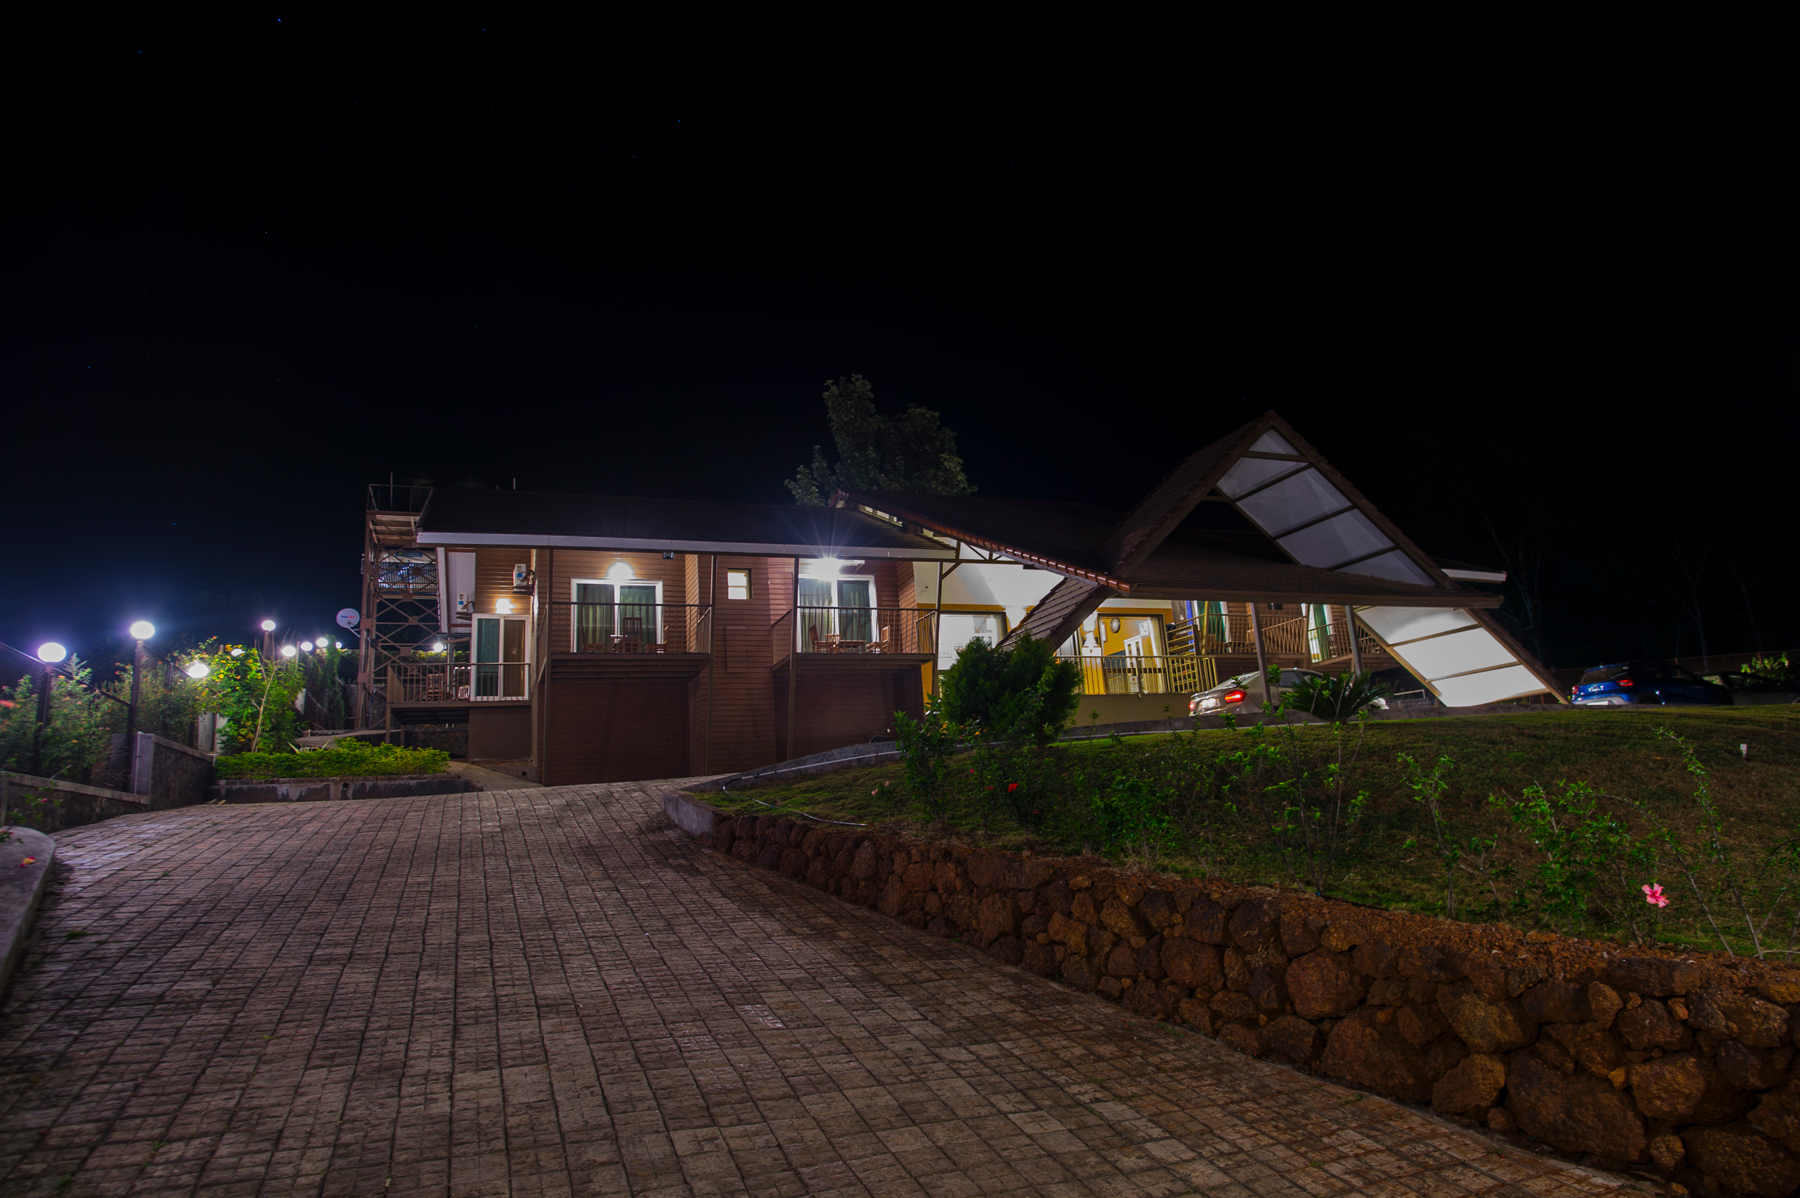 One of the best places to Stay in Panchgani – Dala Rooster & Dala Mare. If you are looking for the best Panchgani bungalow resort, you have come to the right place. The Stay in Panchgani will give you the best lifetime experience. Stay in Panchgani is definitely one of the best option for nature lovers. Are you looking the for Best Hotels in Panchgani? Our bungalows are no less than hotels. Panchgani farmhouse, Panchgani Accommodation is one of the best hotels in Panchgani. Welcome to resorts in Panchgani for a supreme stay for family and friends. Dala mare & Dala Rooster are the best Panchgani cottages if you are looking for an amazing destination. Come and experience your holidays in Panchgani bungalow resorts. Plan a weekend at resorts in Panchgani with family and friends with all the luxuries at one place. Panchgani farmhouse on rent with all modern amenities is available. Look at these best places to stay in Panchgani.